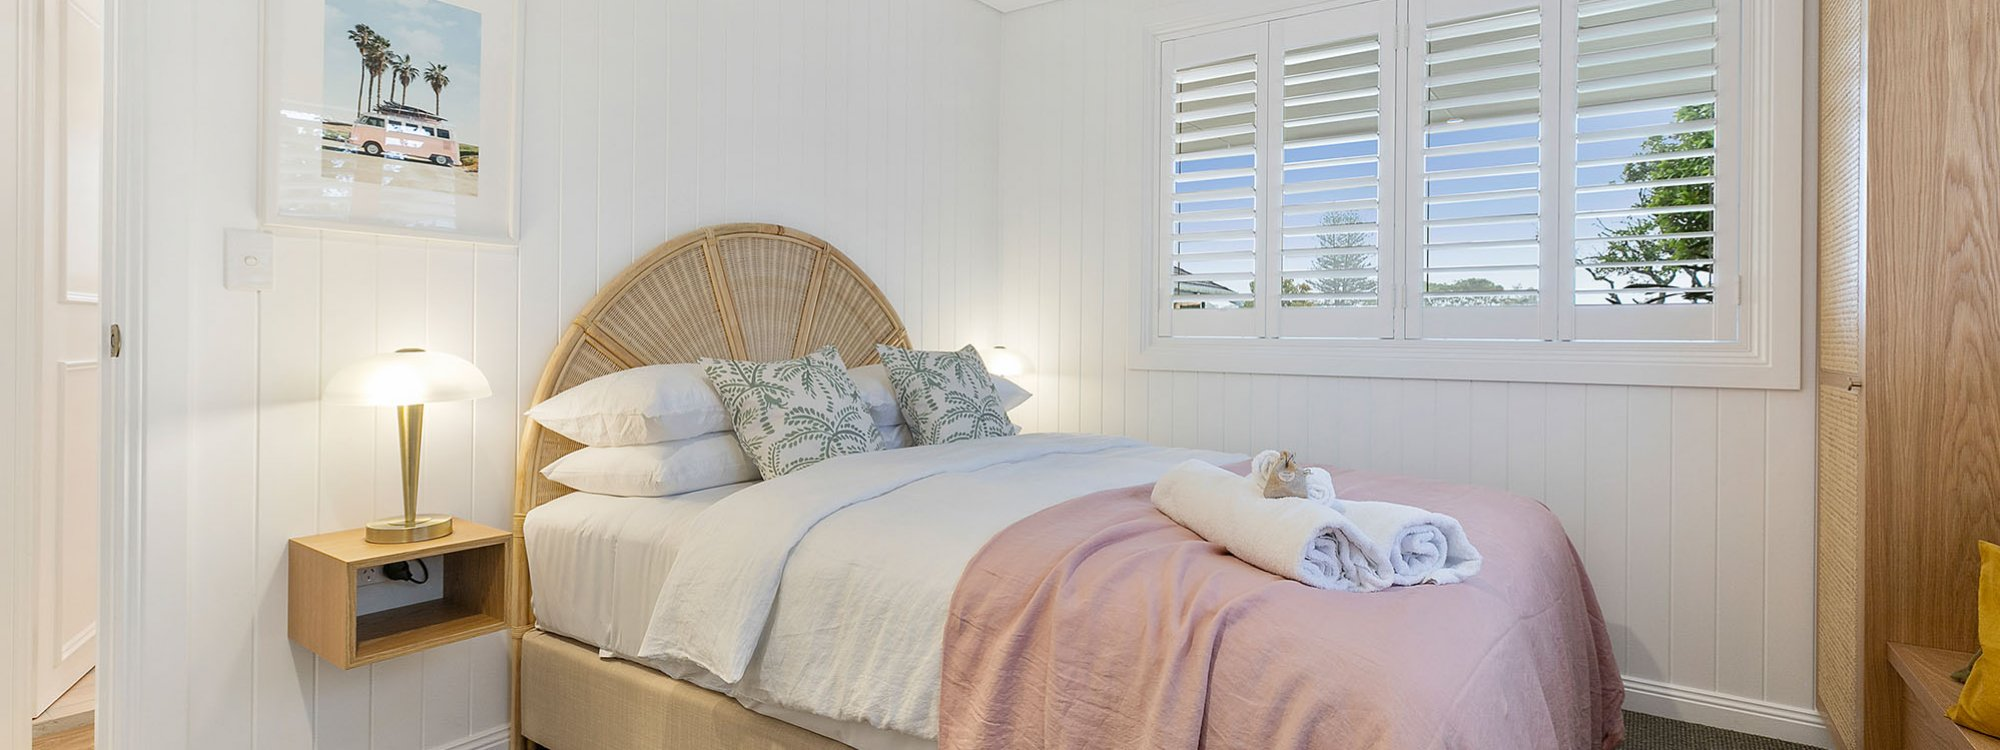 Sunset Beach - Summer Breeze - Brunswick Heads - Queen Bedroom 2